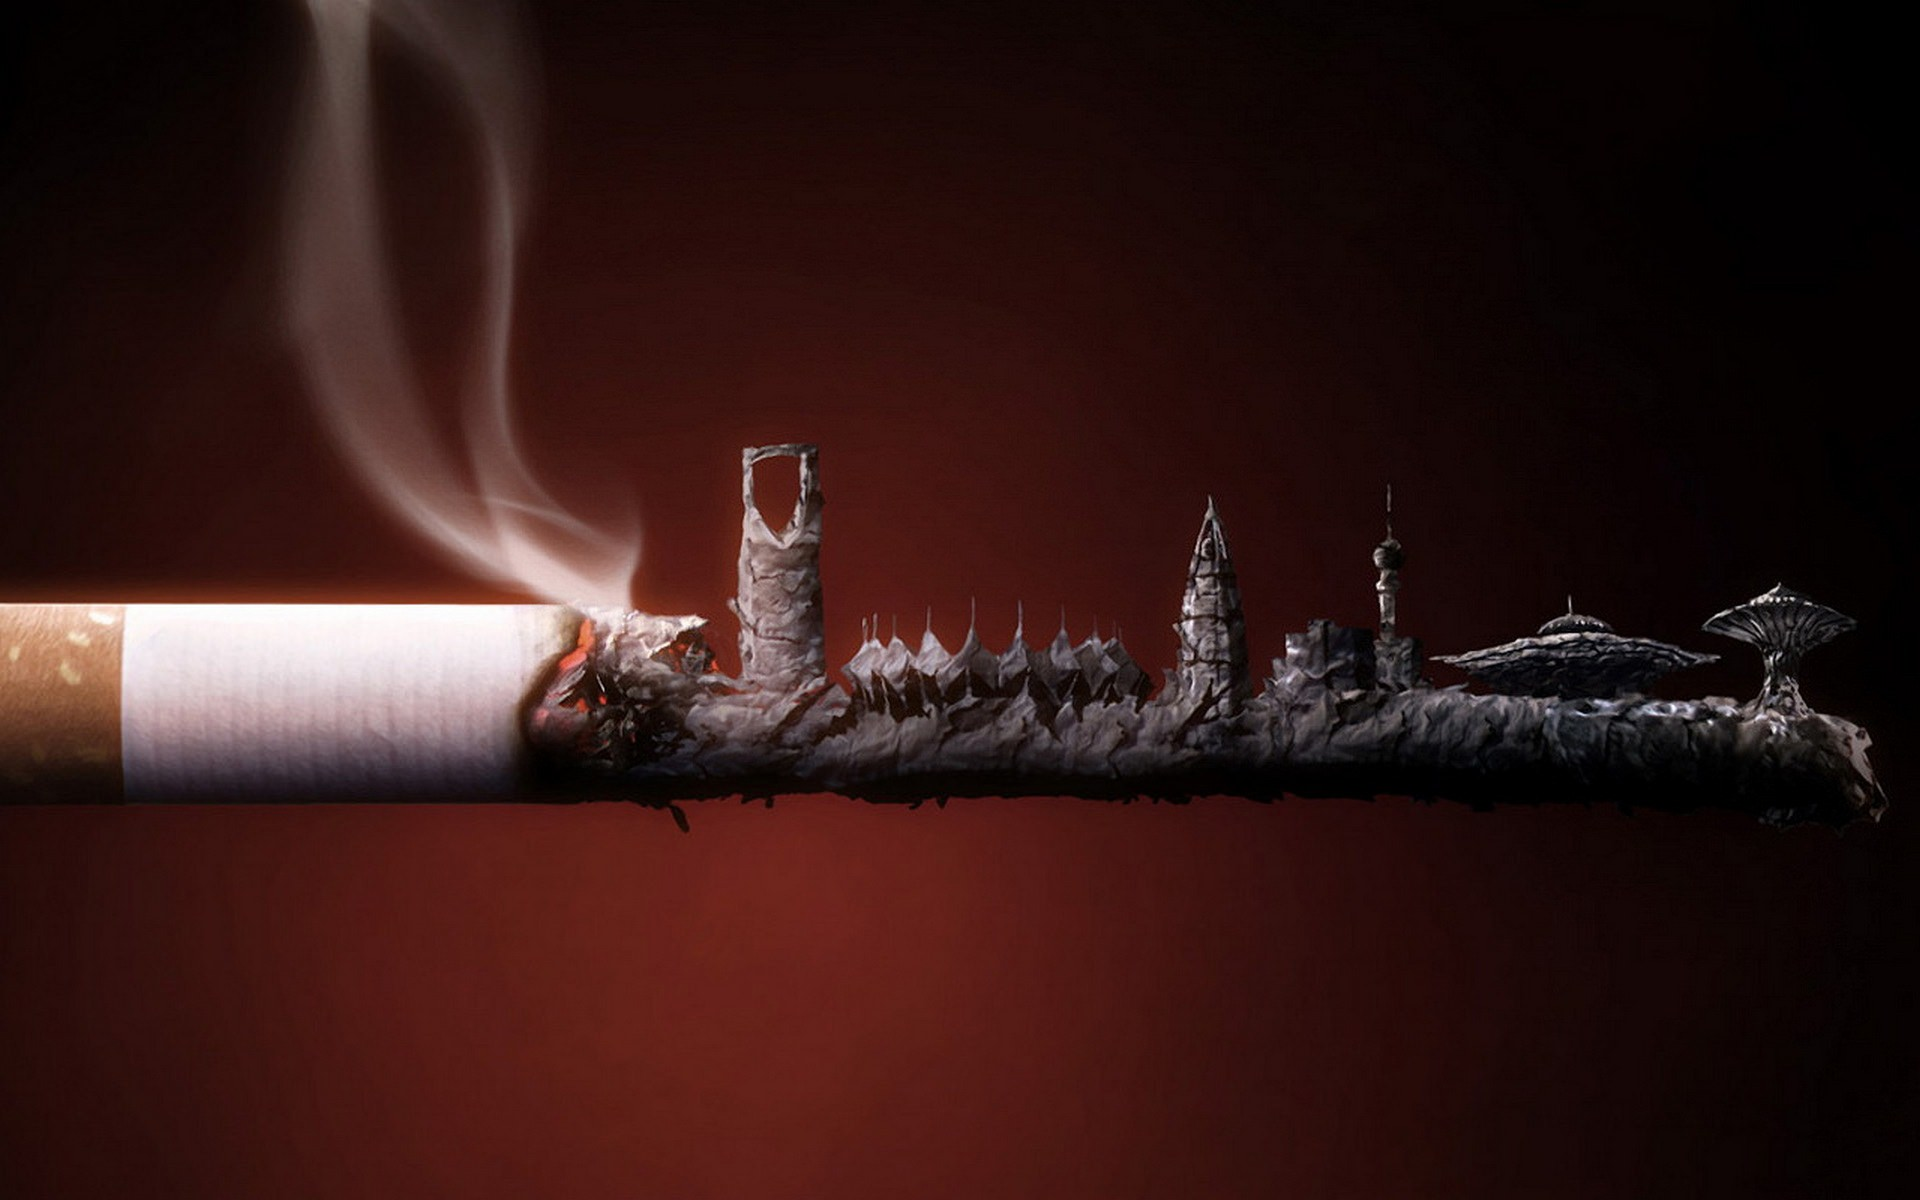 Smoking kills photo